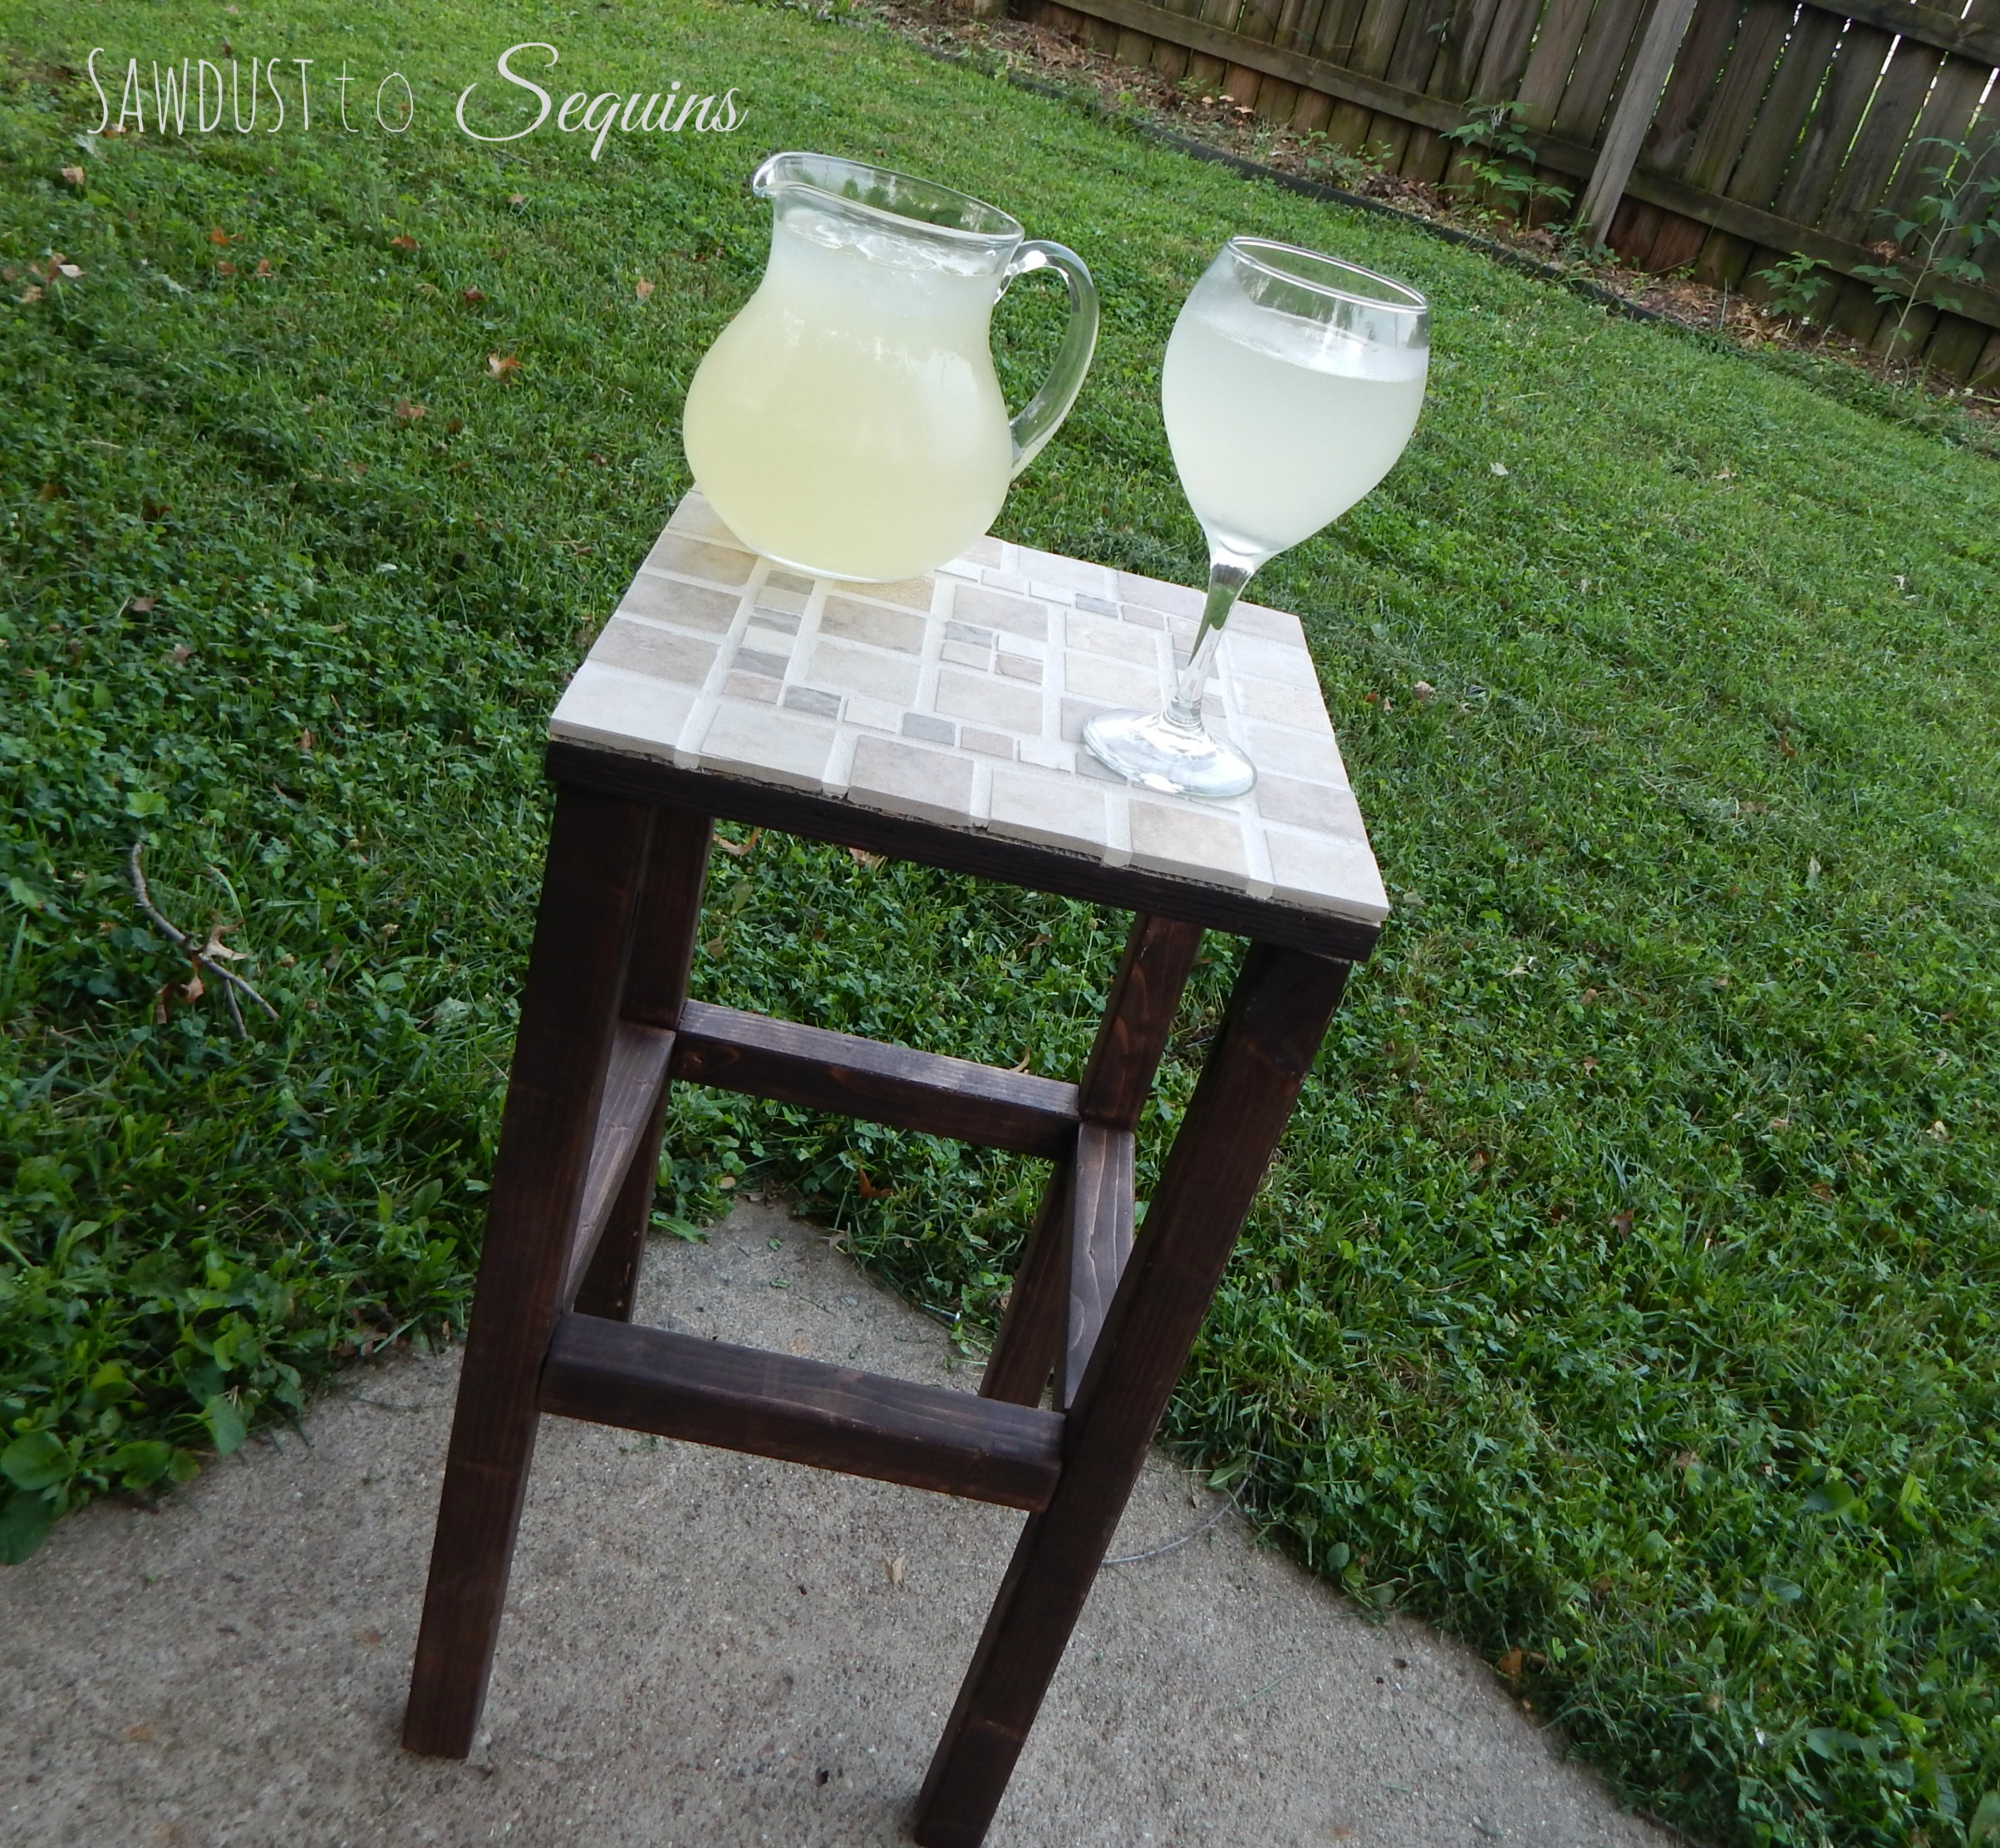 Diy tiled end table sawdust to sequins for Make your own end table